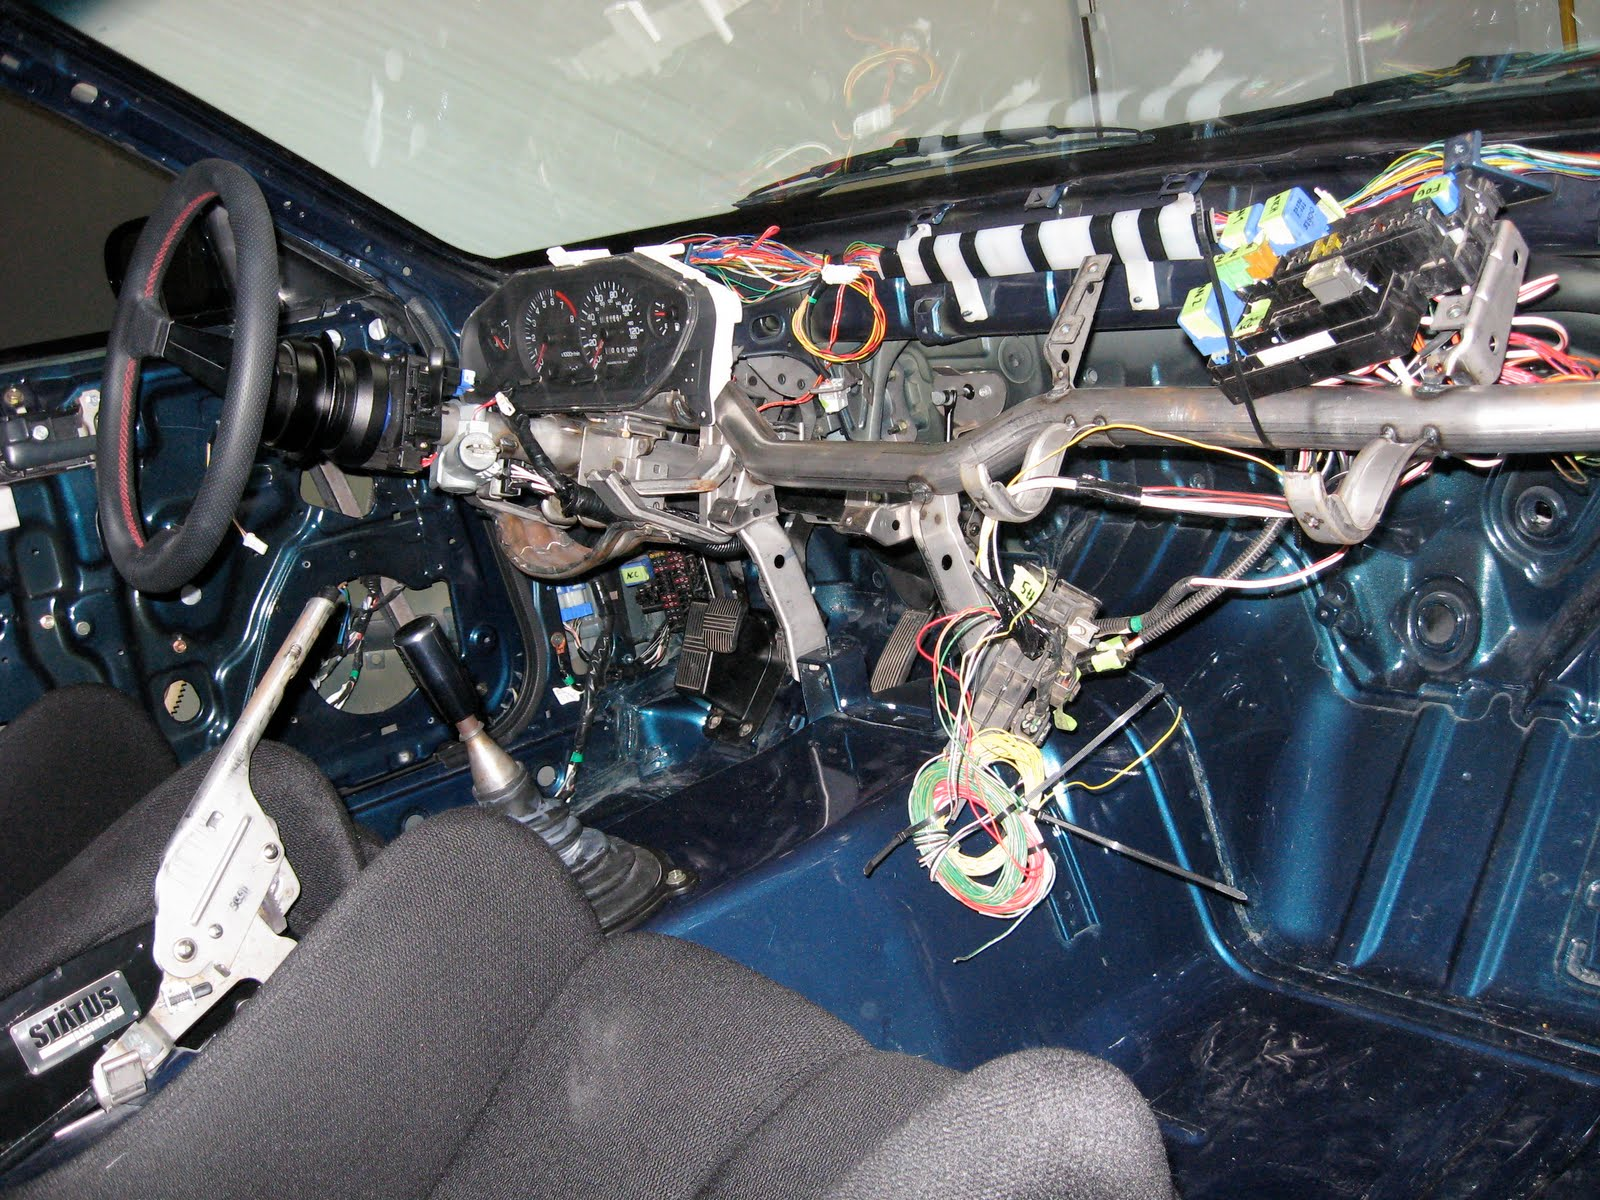 1995 240sx wiring harness wiring diagram fascinating 240sx body harness wiring diagram 1995 240sx wiring harness [ 1600 x 1200 Pixel ]